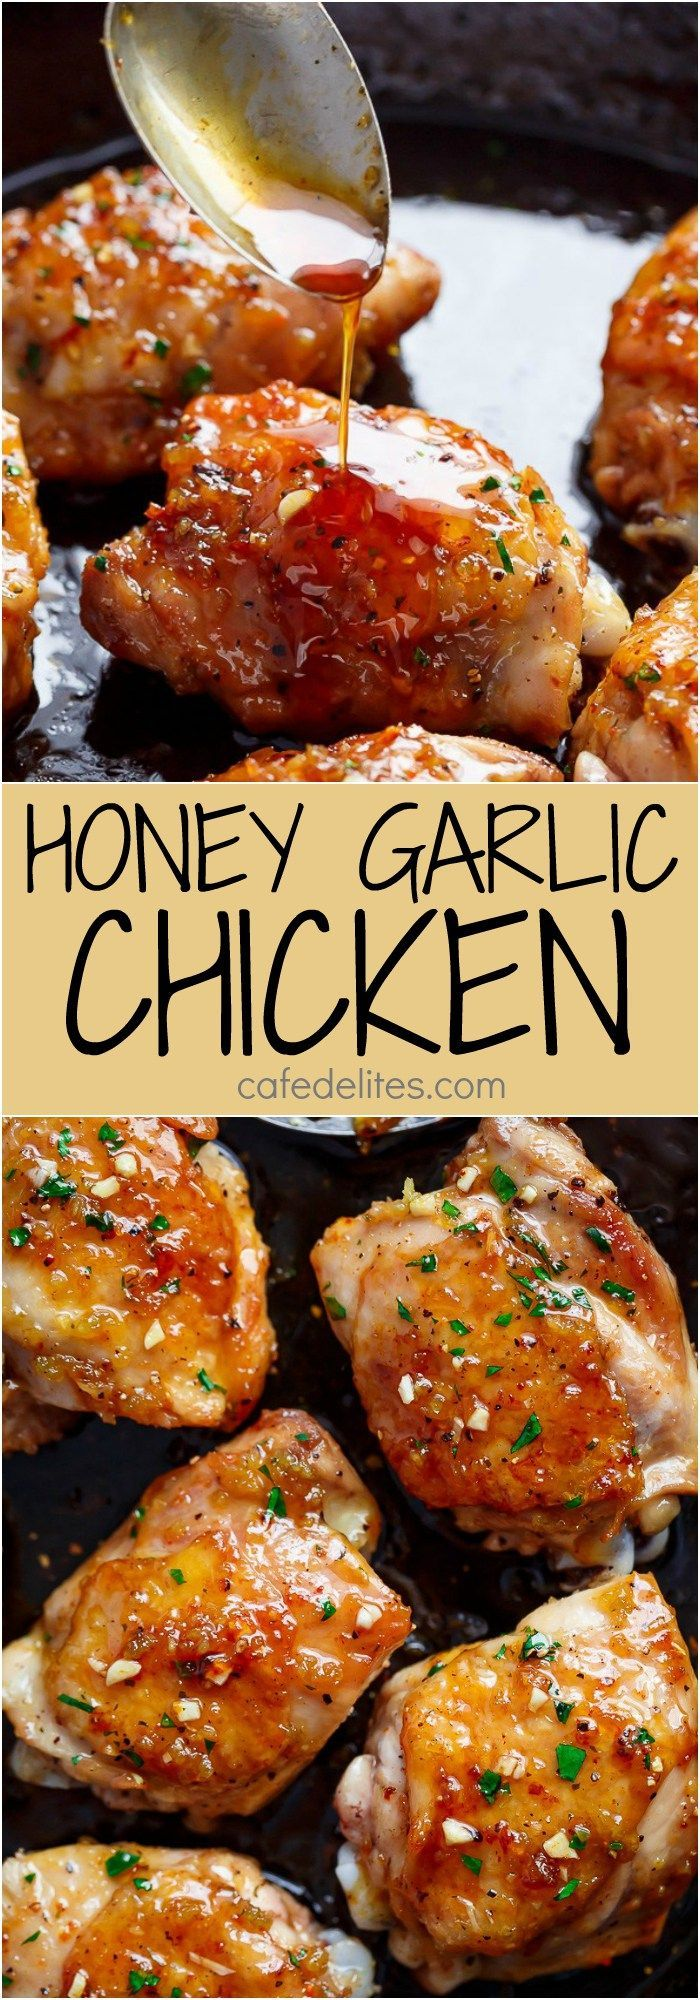 Sticky and Easy Honey Garlic Chicken made simple, with the most amazing 5-ingredient honey garlic sauce that is so good you'll want it on everything! Quick & easy weeknight dinner | cafedelites.com